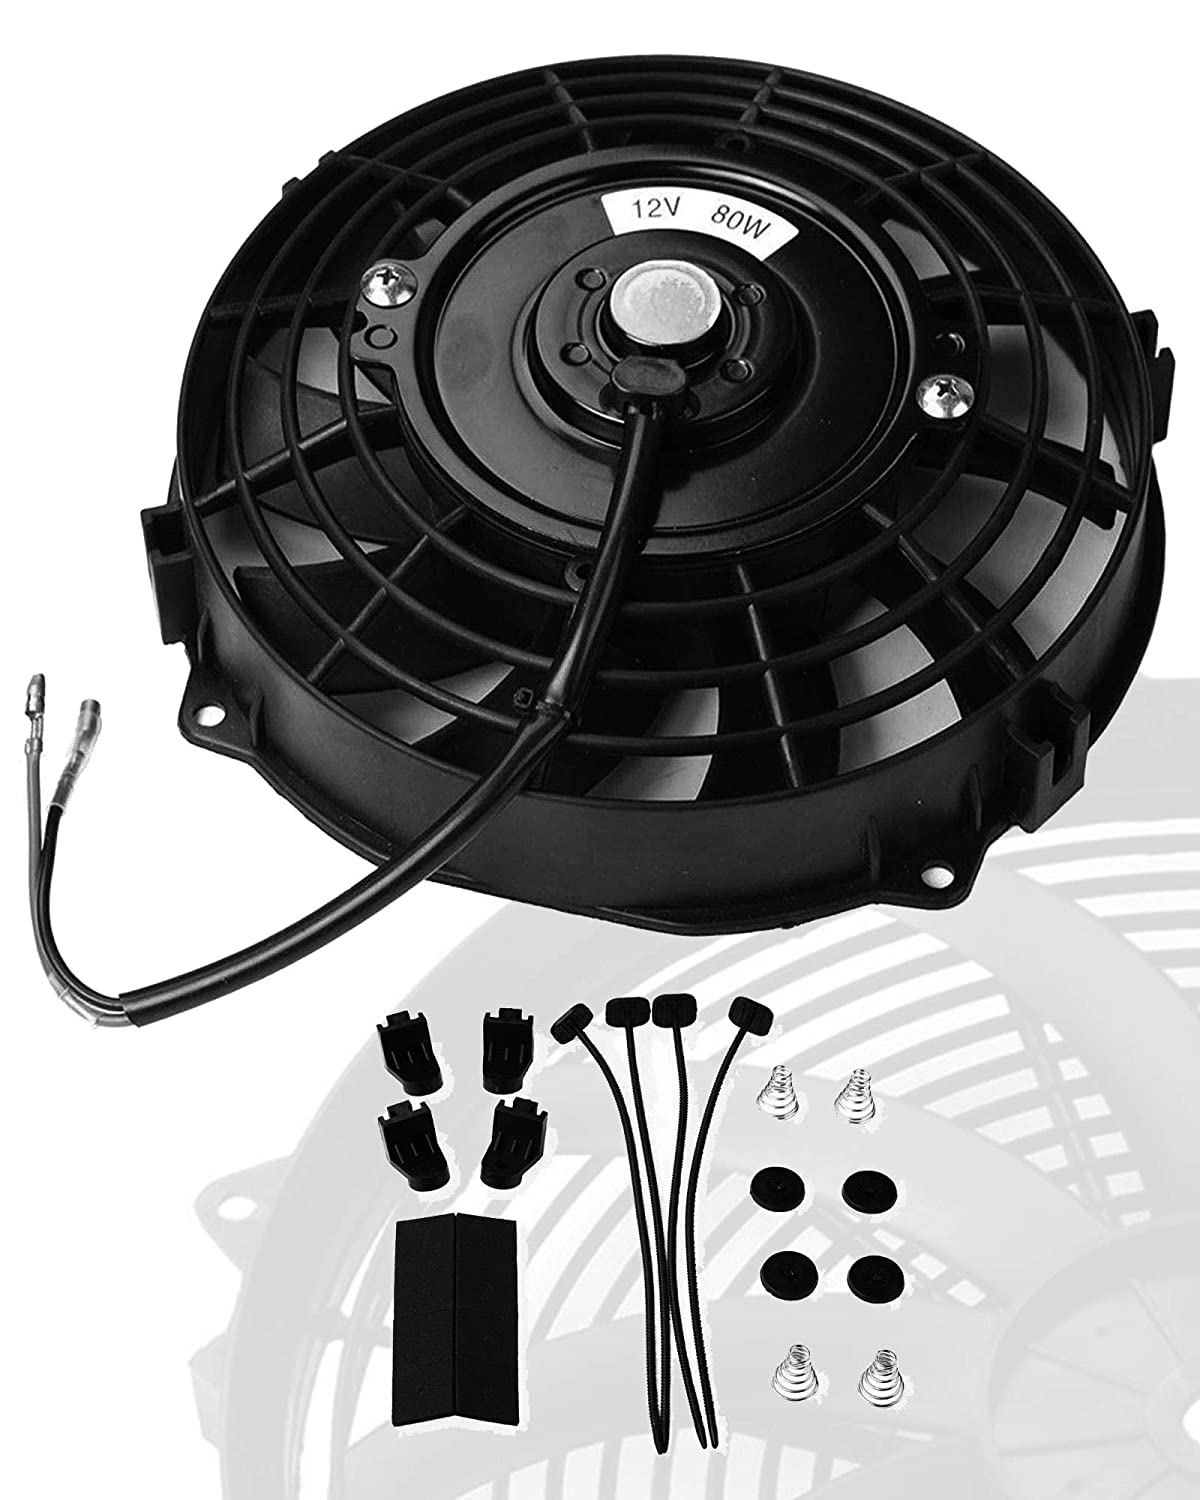 Black, 14 Universal Slim Fan Push Pull Electric Radiator Cooling 12V 80W Mount Kit